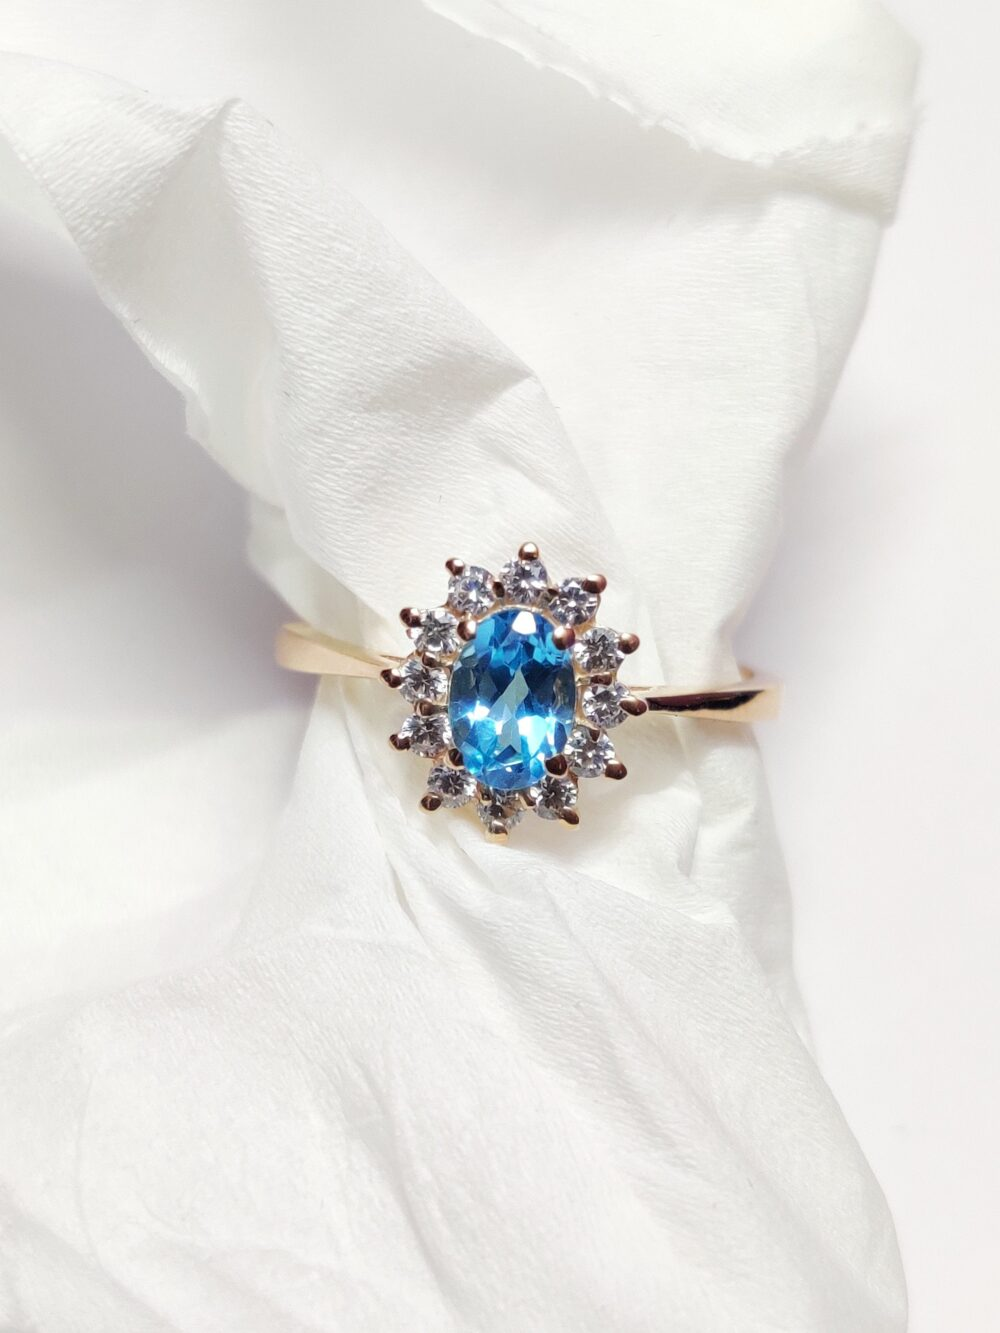 Blue Topaz Engagement Ring Natural Solitaire 1 Ct Swiss Wedding Band 925 Sterling Silver